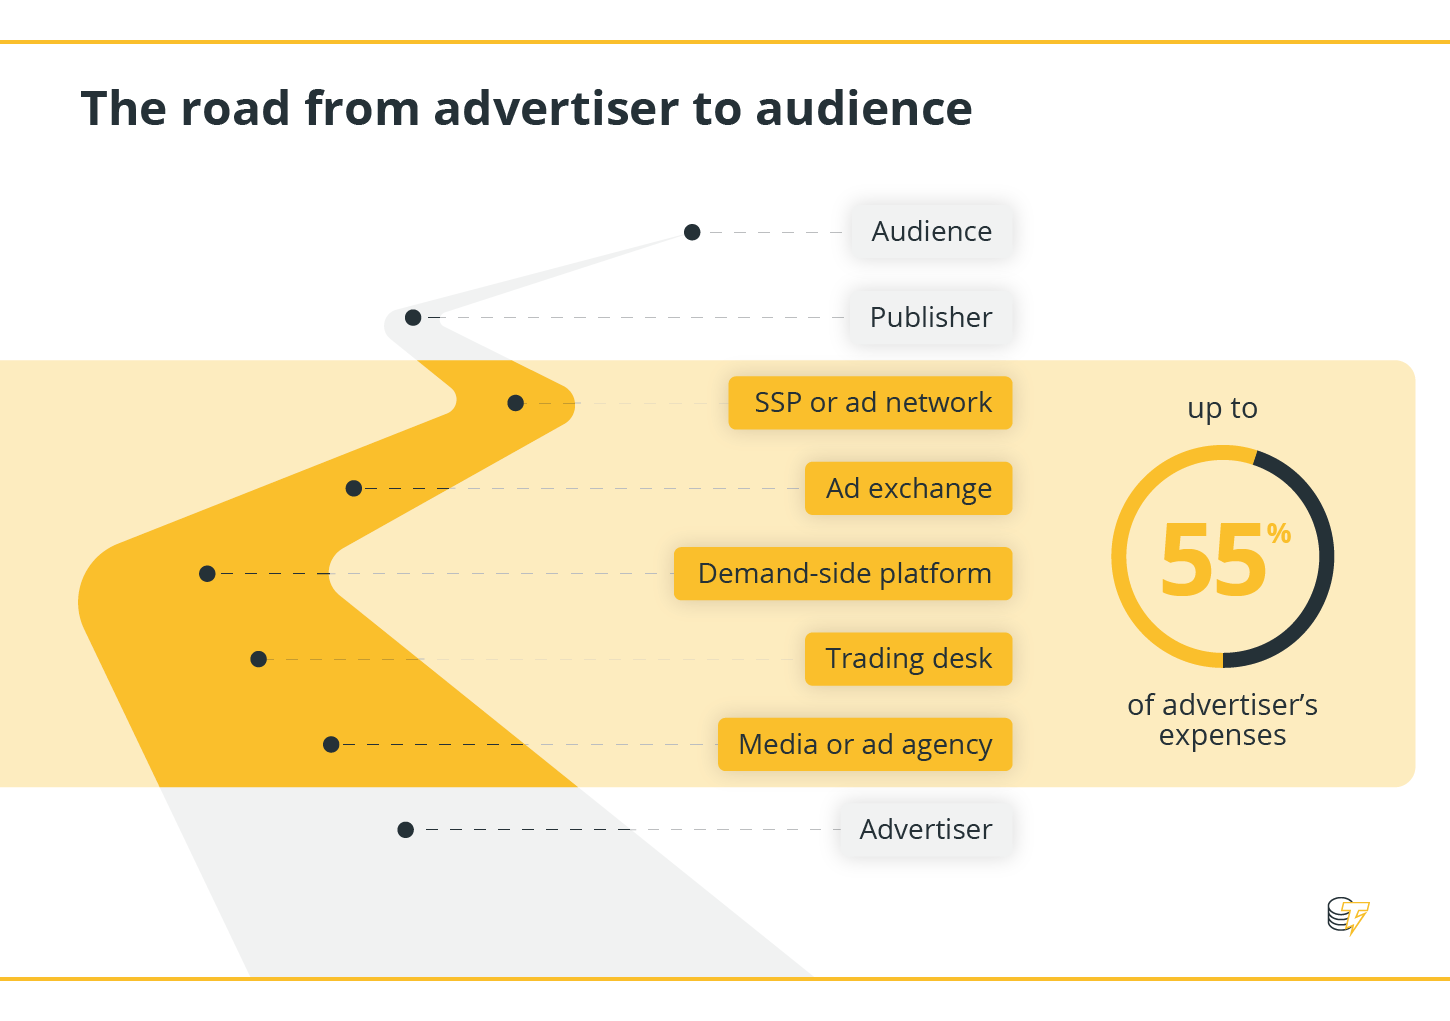 The road from advertiser to audience